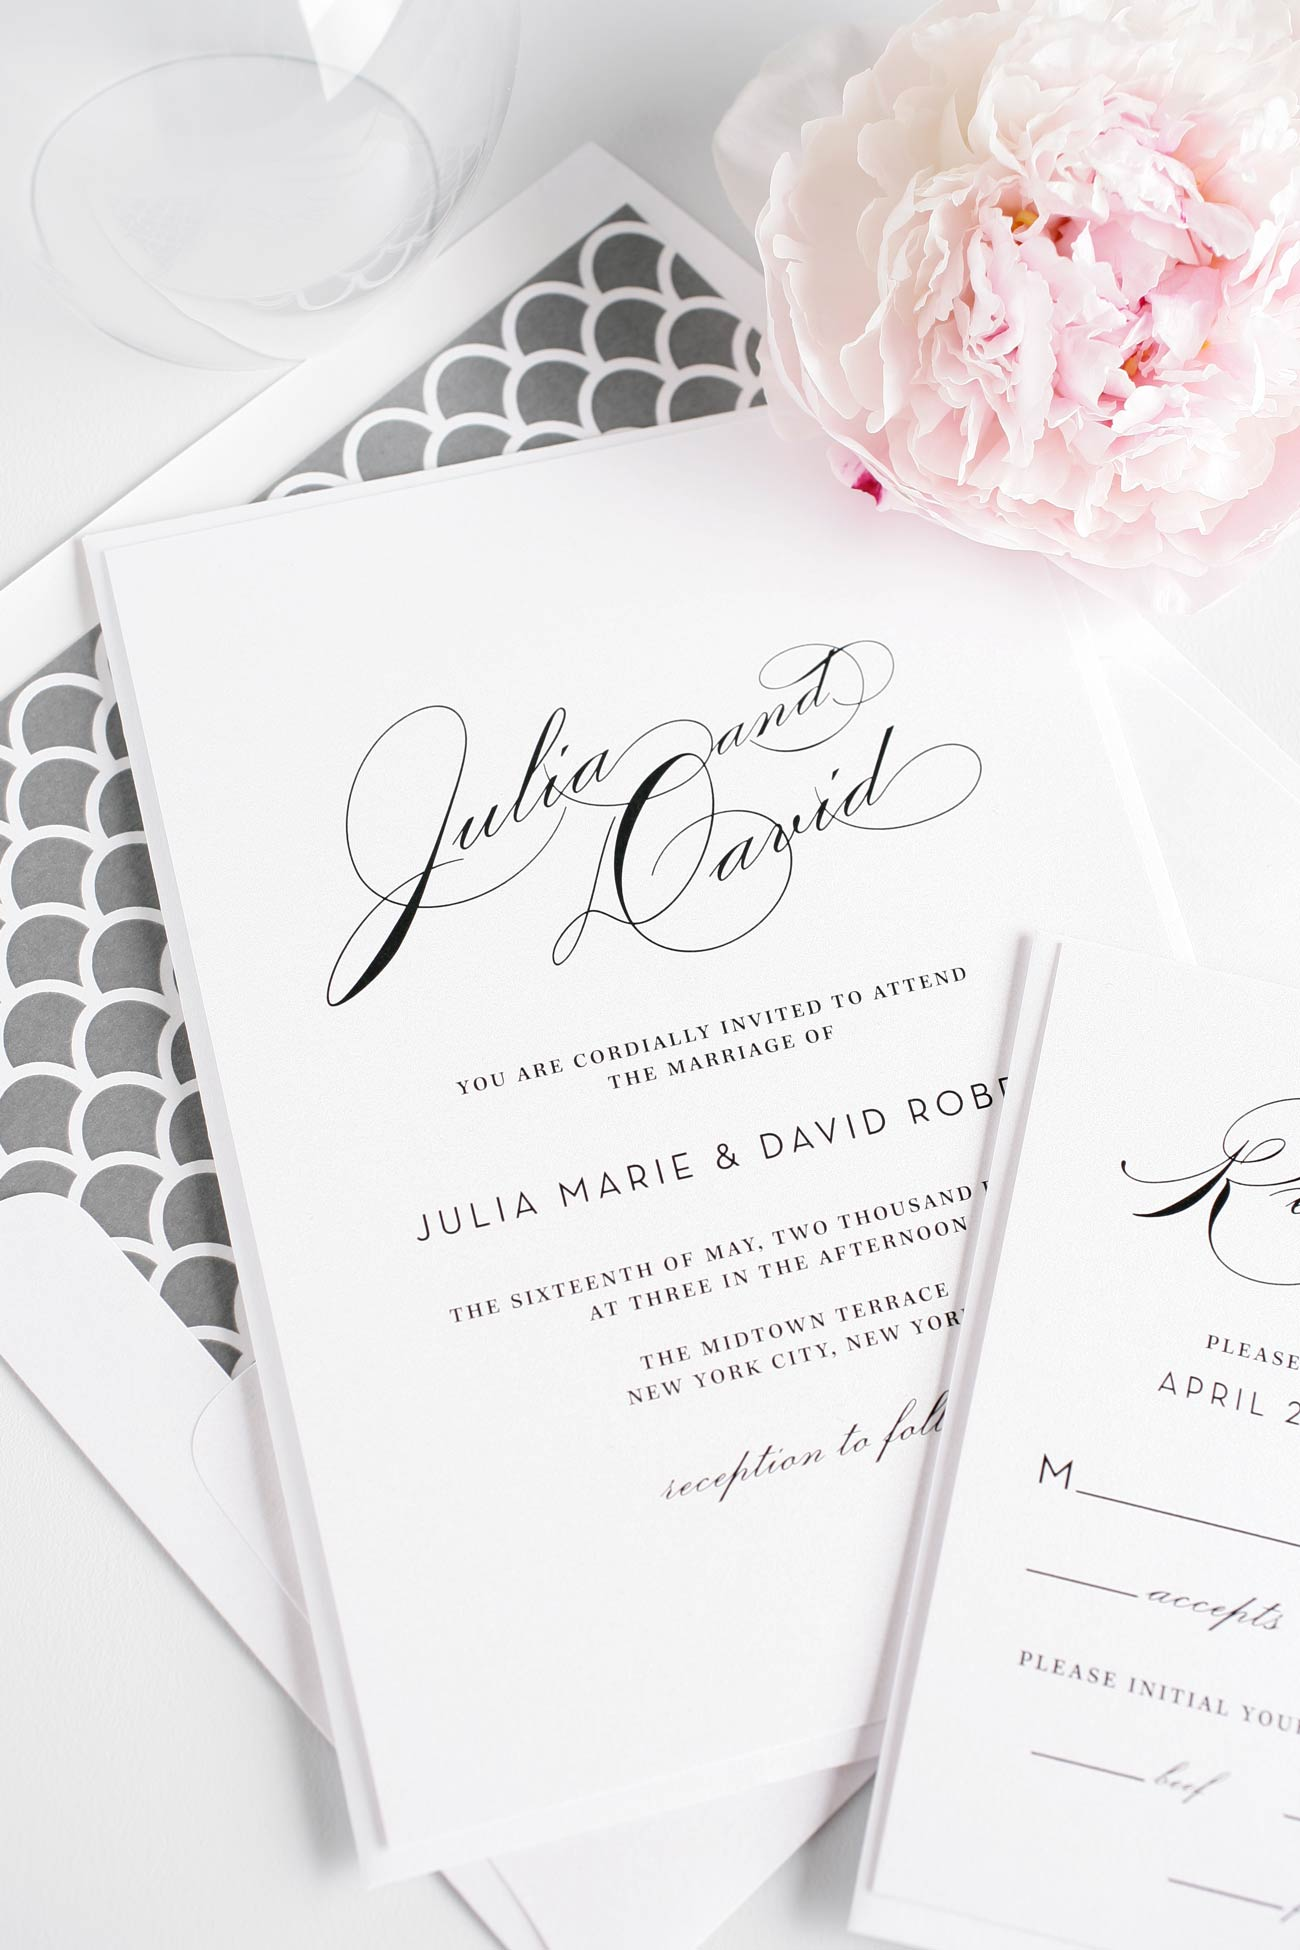 Shine Wedding Invitations | Wedding Invitations in Rochester ...